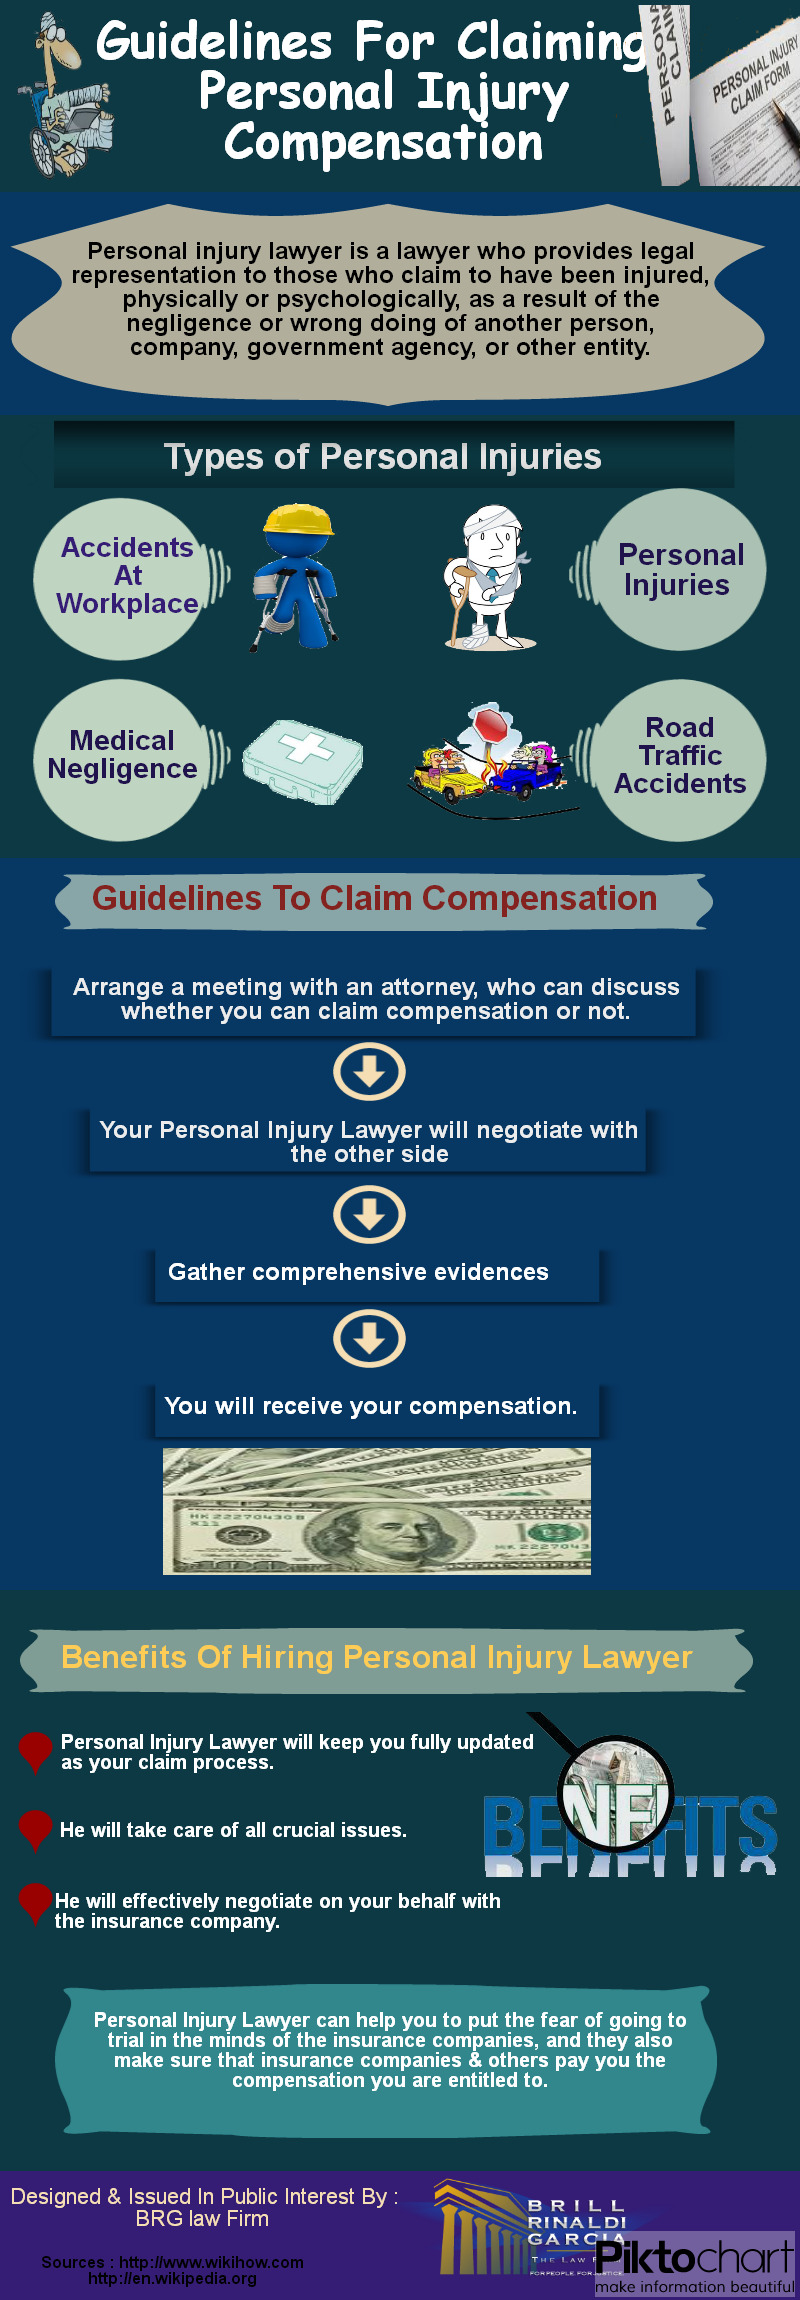 guidelines-for-claiming-personal-injury-compensation_52628873eb6ed